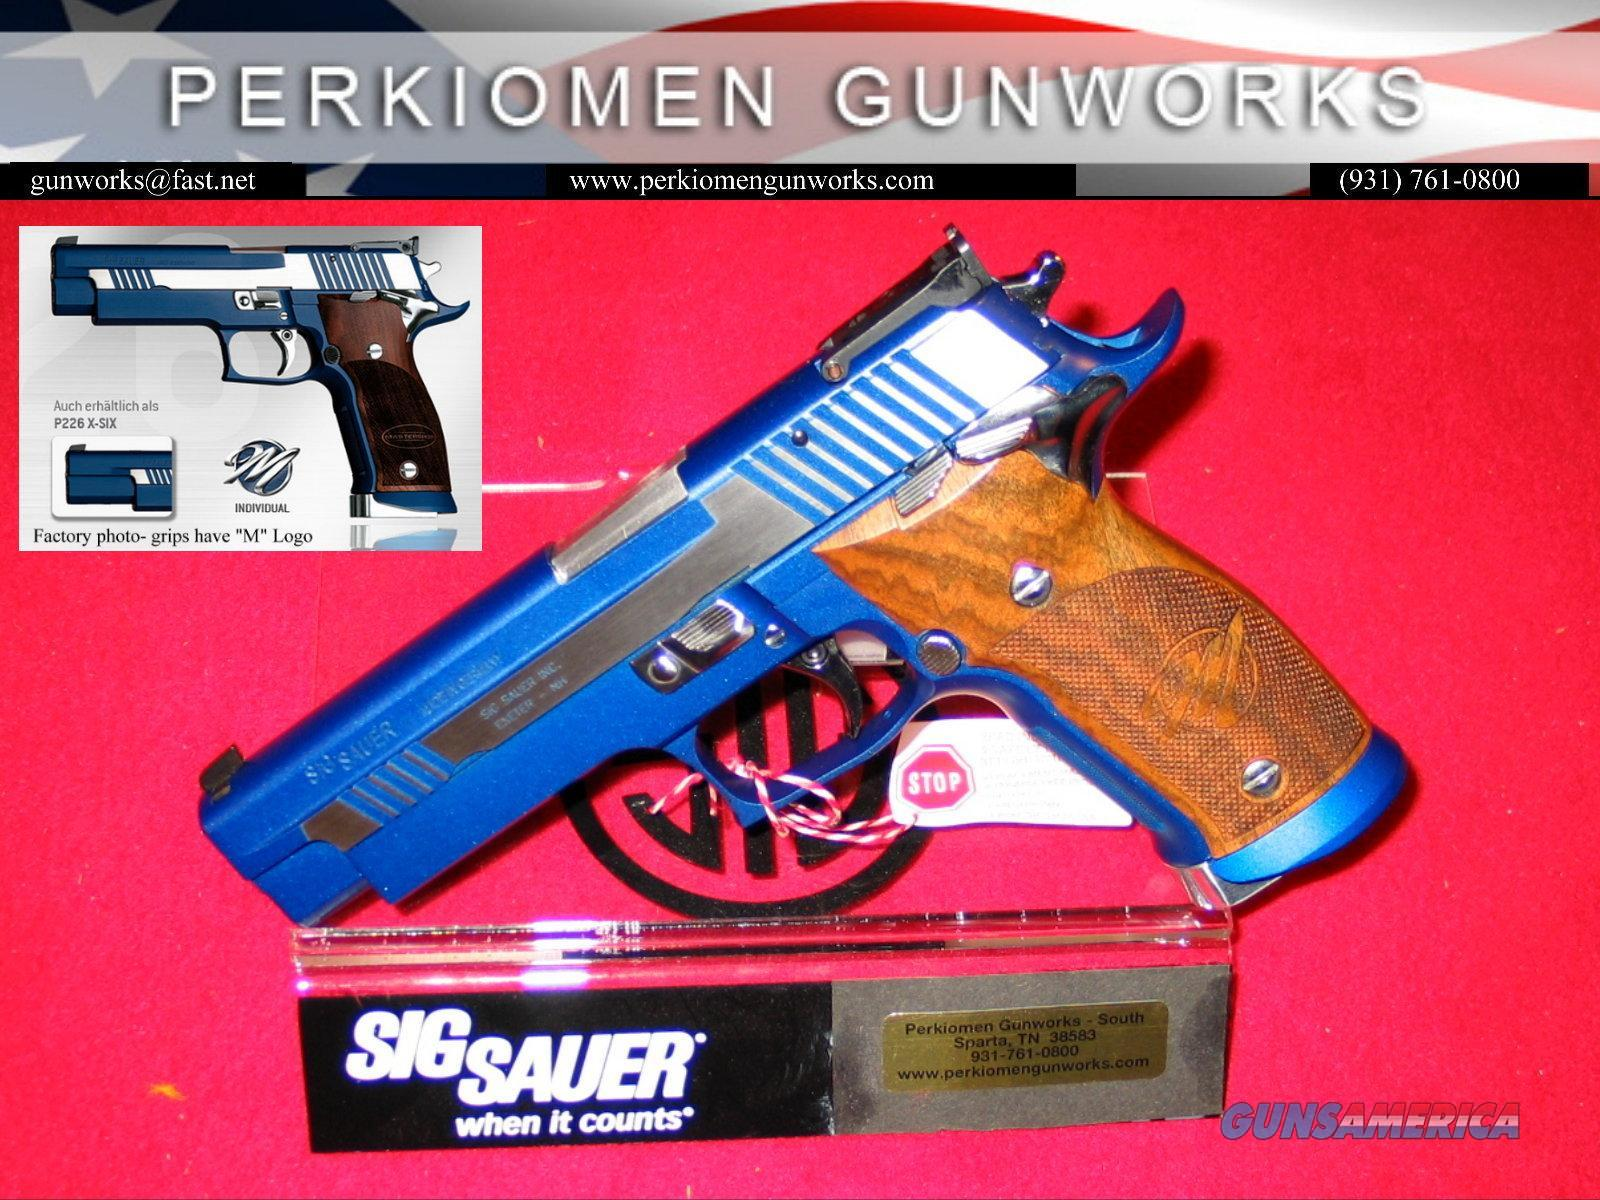 P226 X5 Blue Moon - Master Shop gun, New in Box  Guns > Pistols > Sig - Sauer/Sigarms Pistols > P226